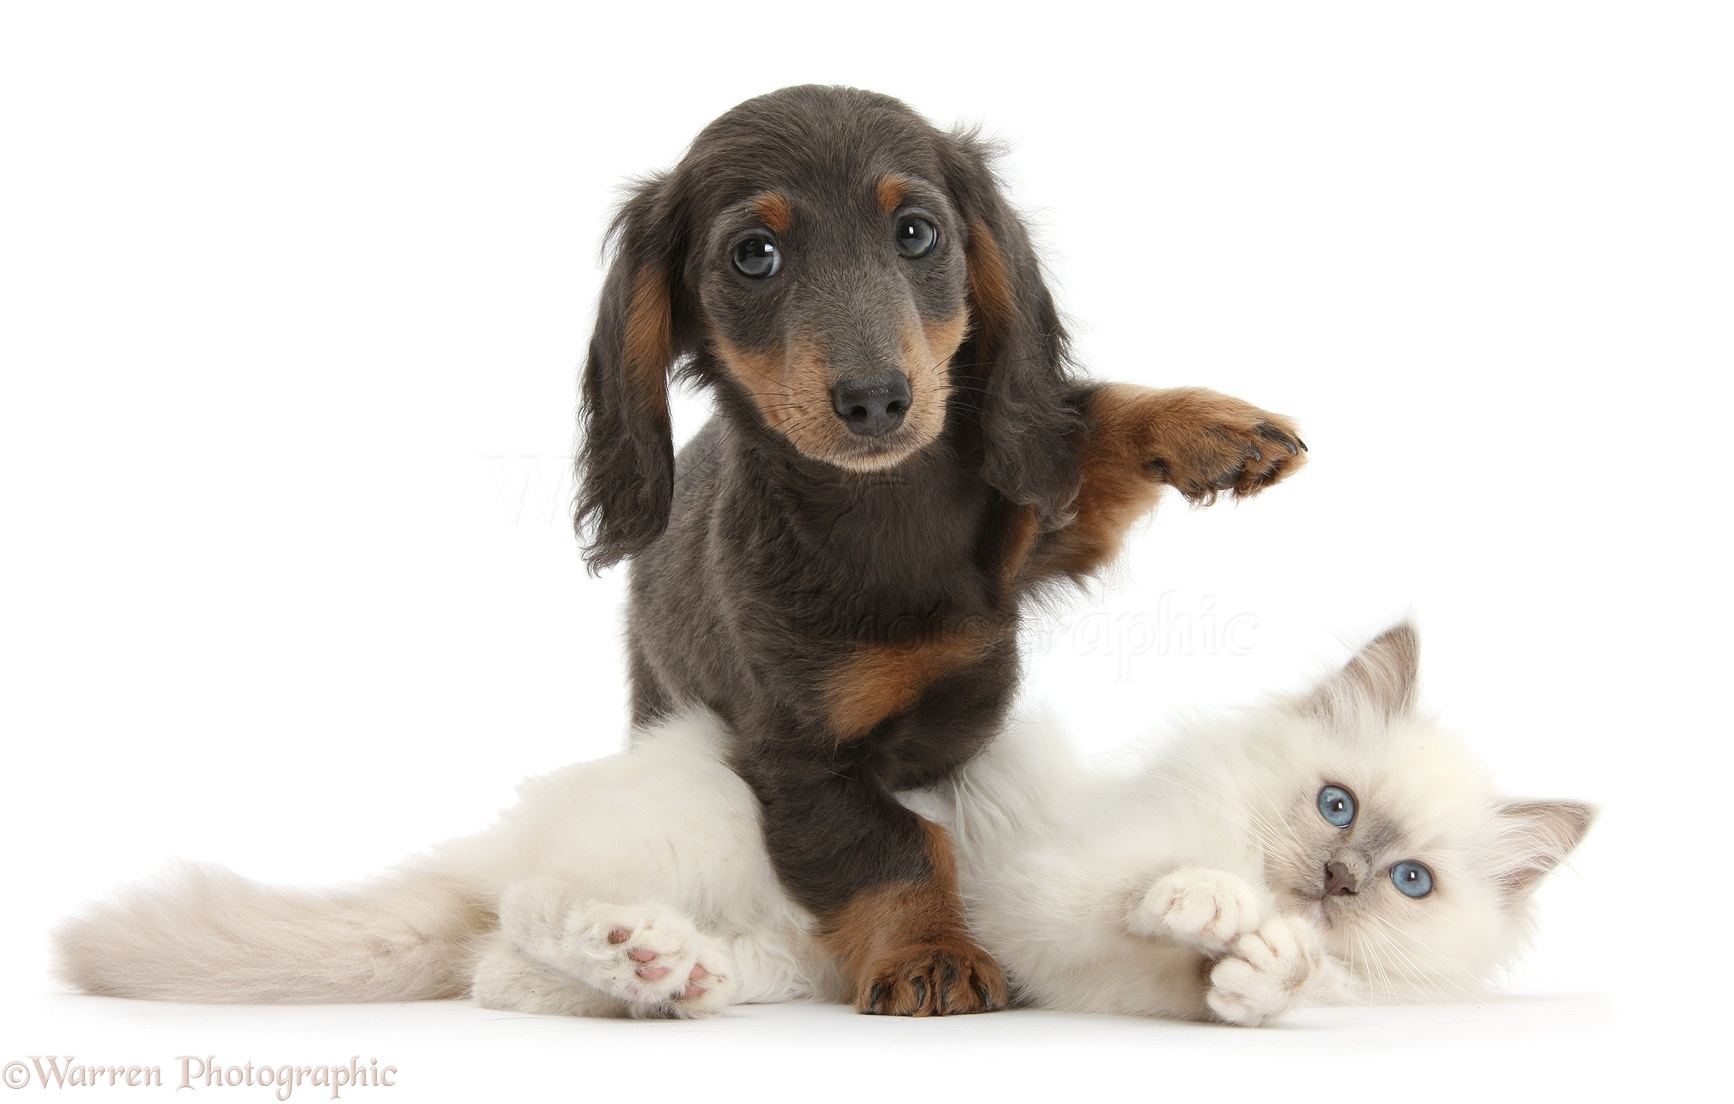 Delightful dogs photography white background pictures blue point kitten and blue and tan dachshund pup voltagebd Gallery